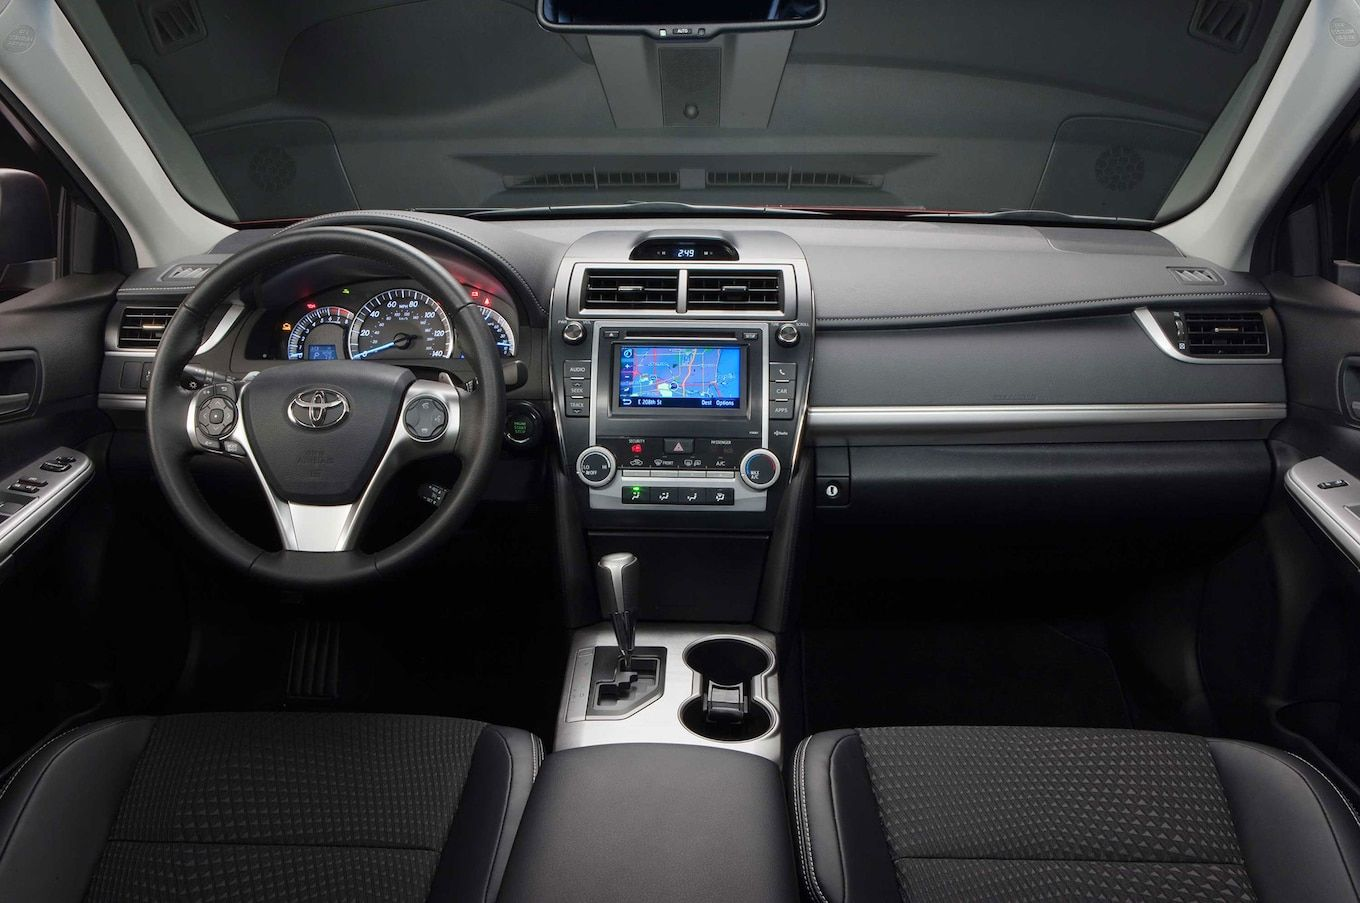 Toyota Camry Interior >> Image Result For 2014 Toyota Camry Xle Interior Toyota